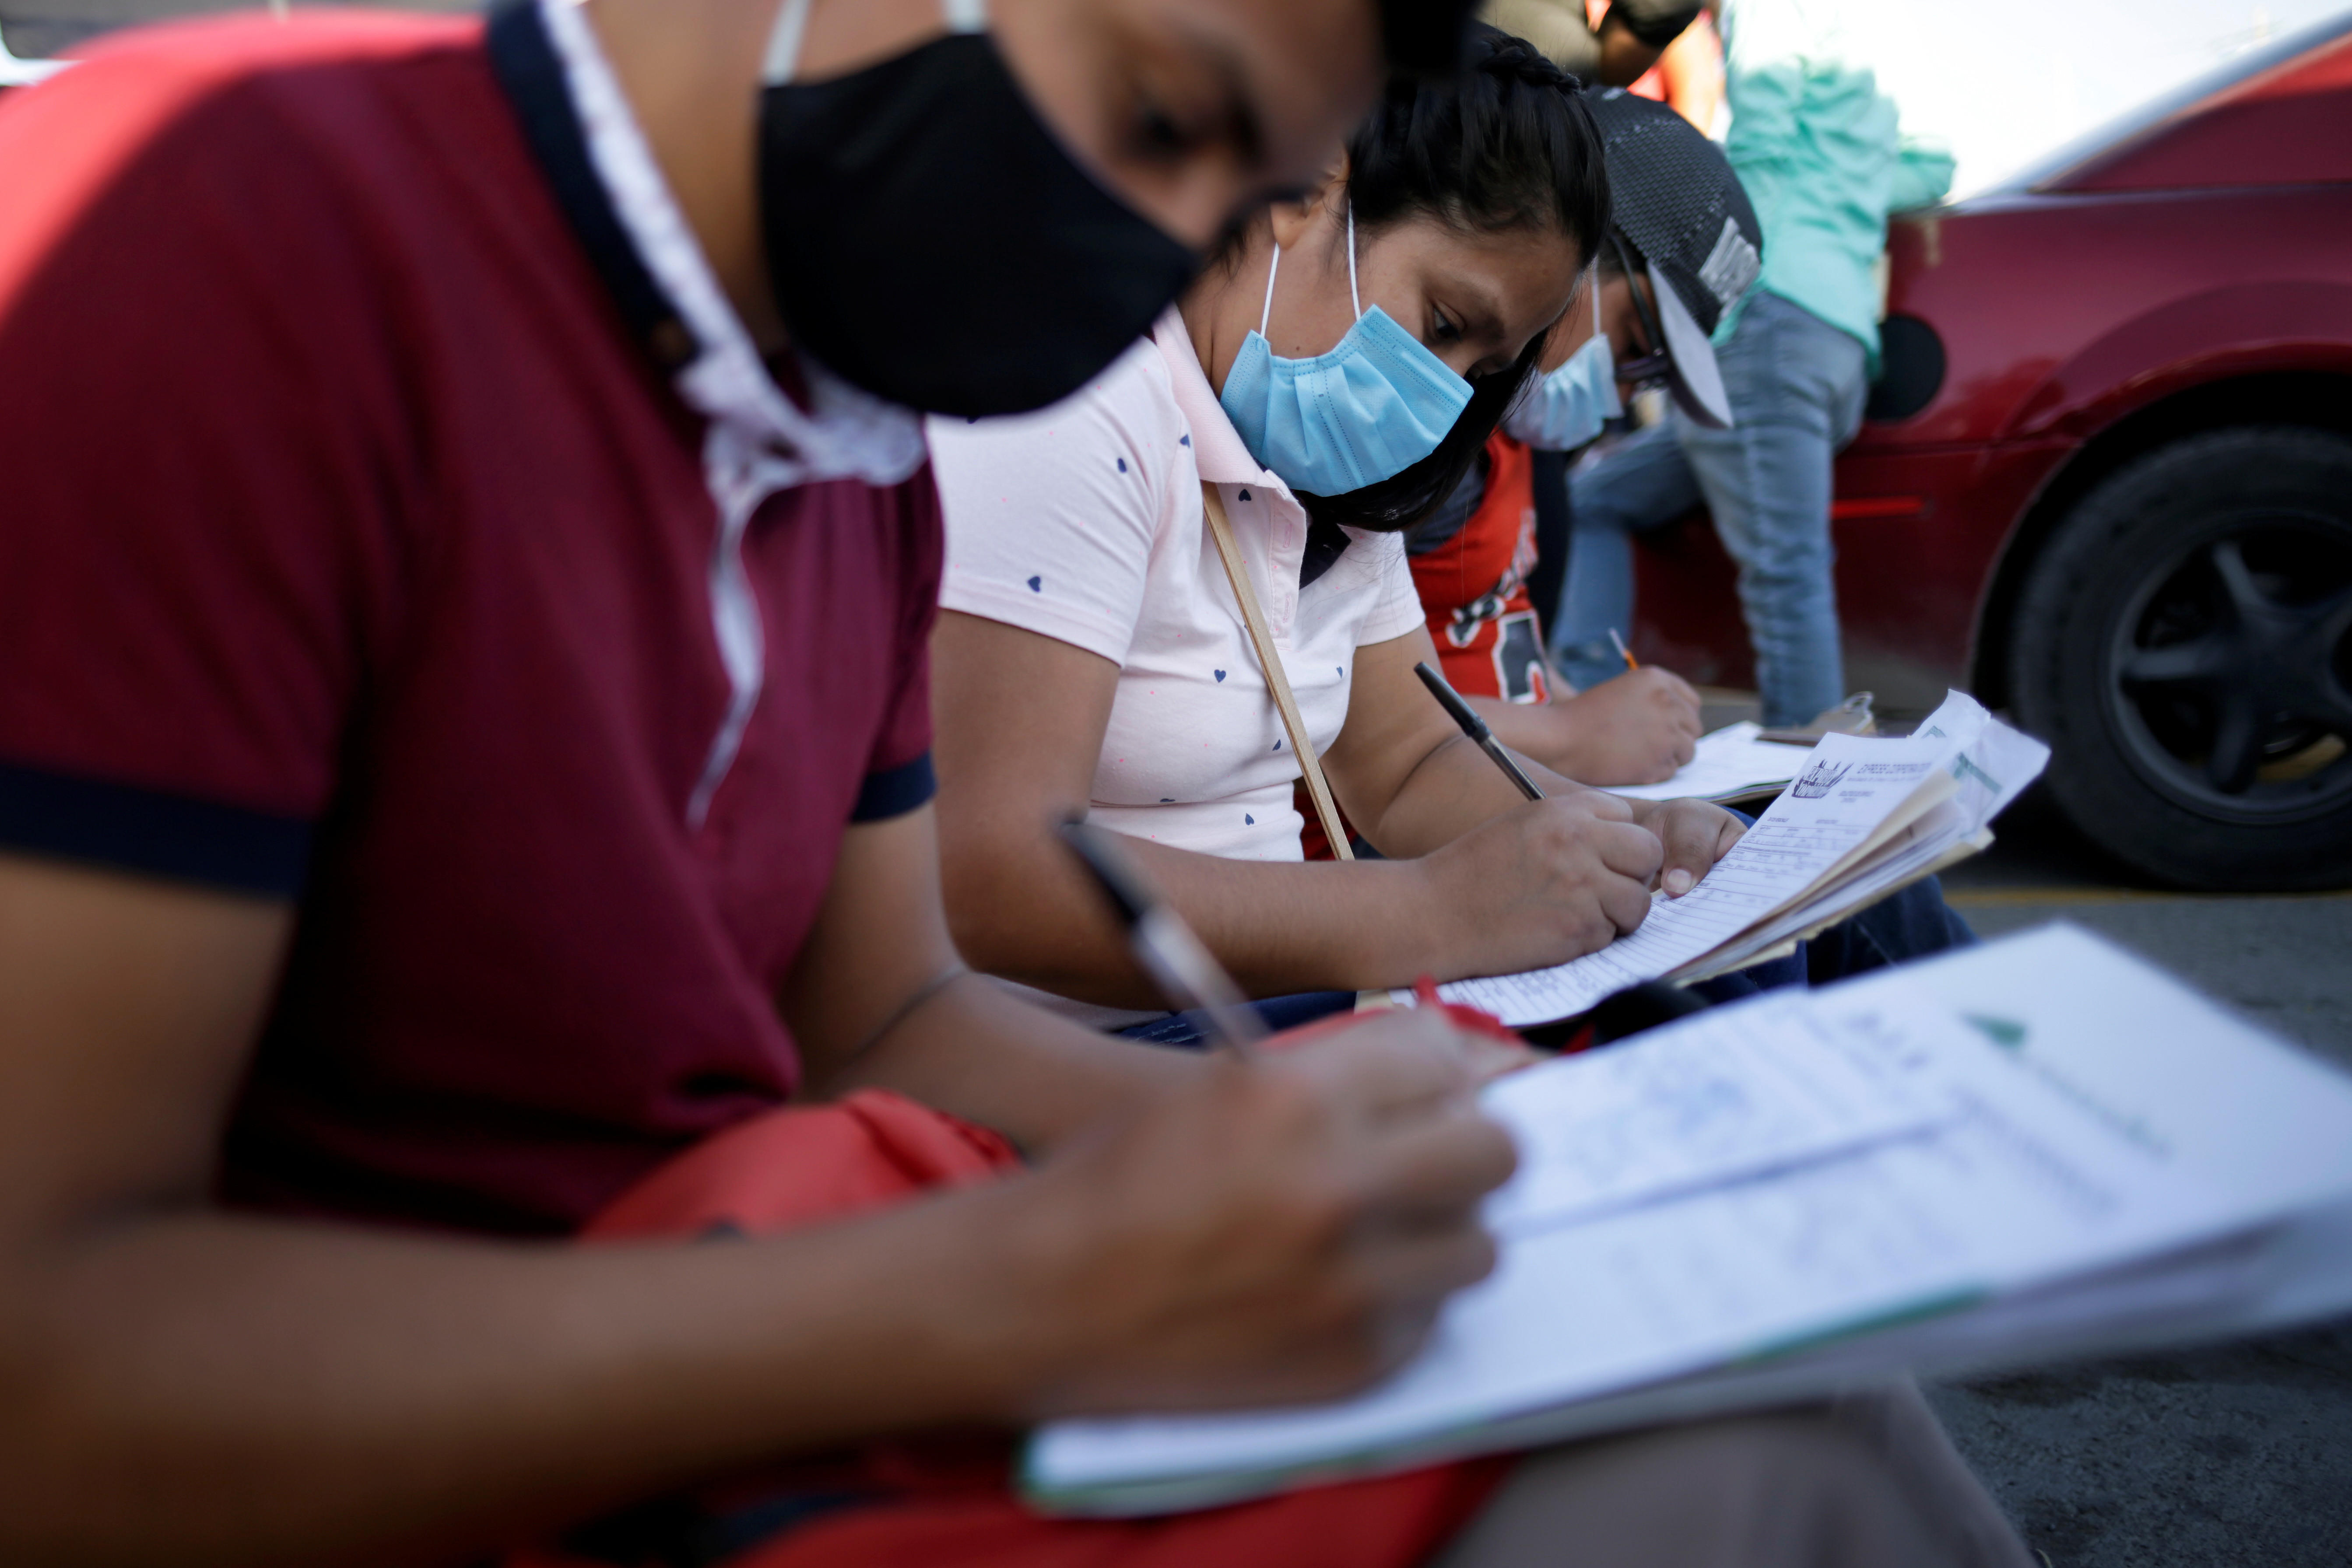 Job seekers fill out job application forms for assembly factories as the coronavirus disease (COVID-19) outbreak continues in Ciudad Juarez, Mexico June 17, 2020. Picture taken June 17, 2020. REUTERS/Jose Luis Gonzalez - RC2VJH9DJJPC